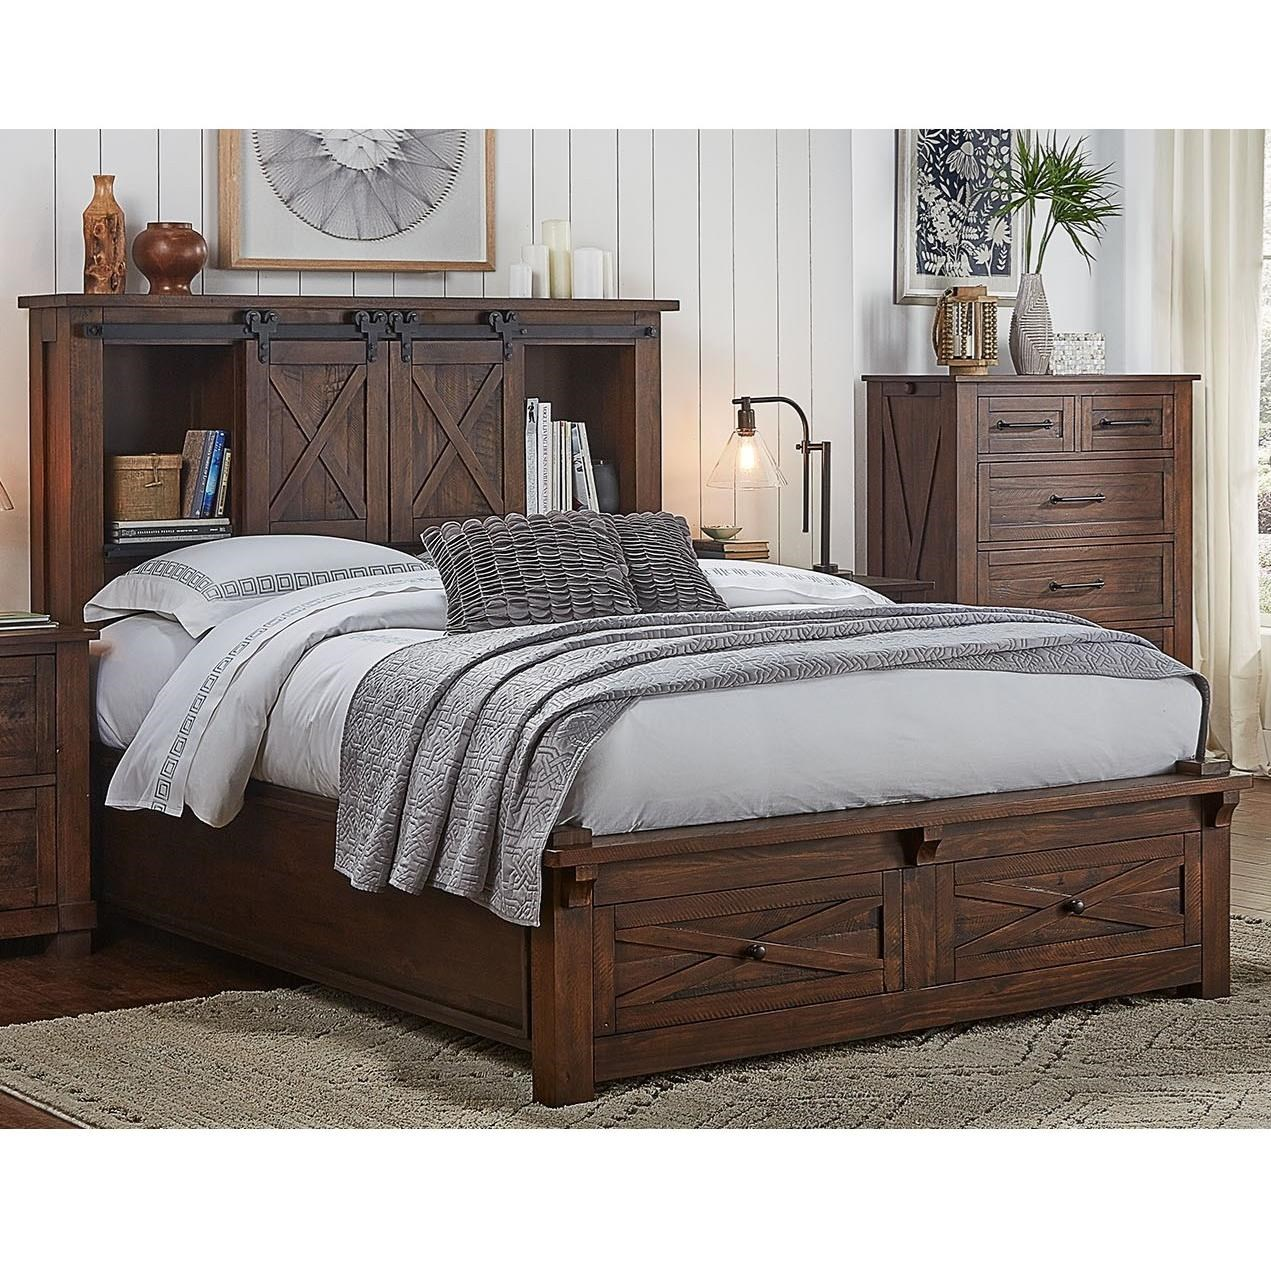 A A Sun Valley California King Bed With Footboard Storage Walker S Furniture Panel Beds